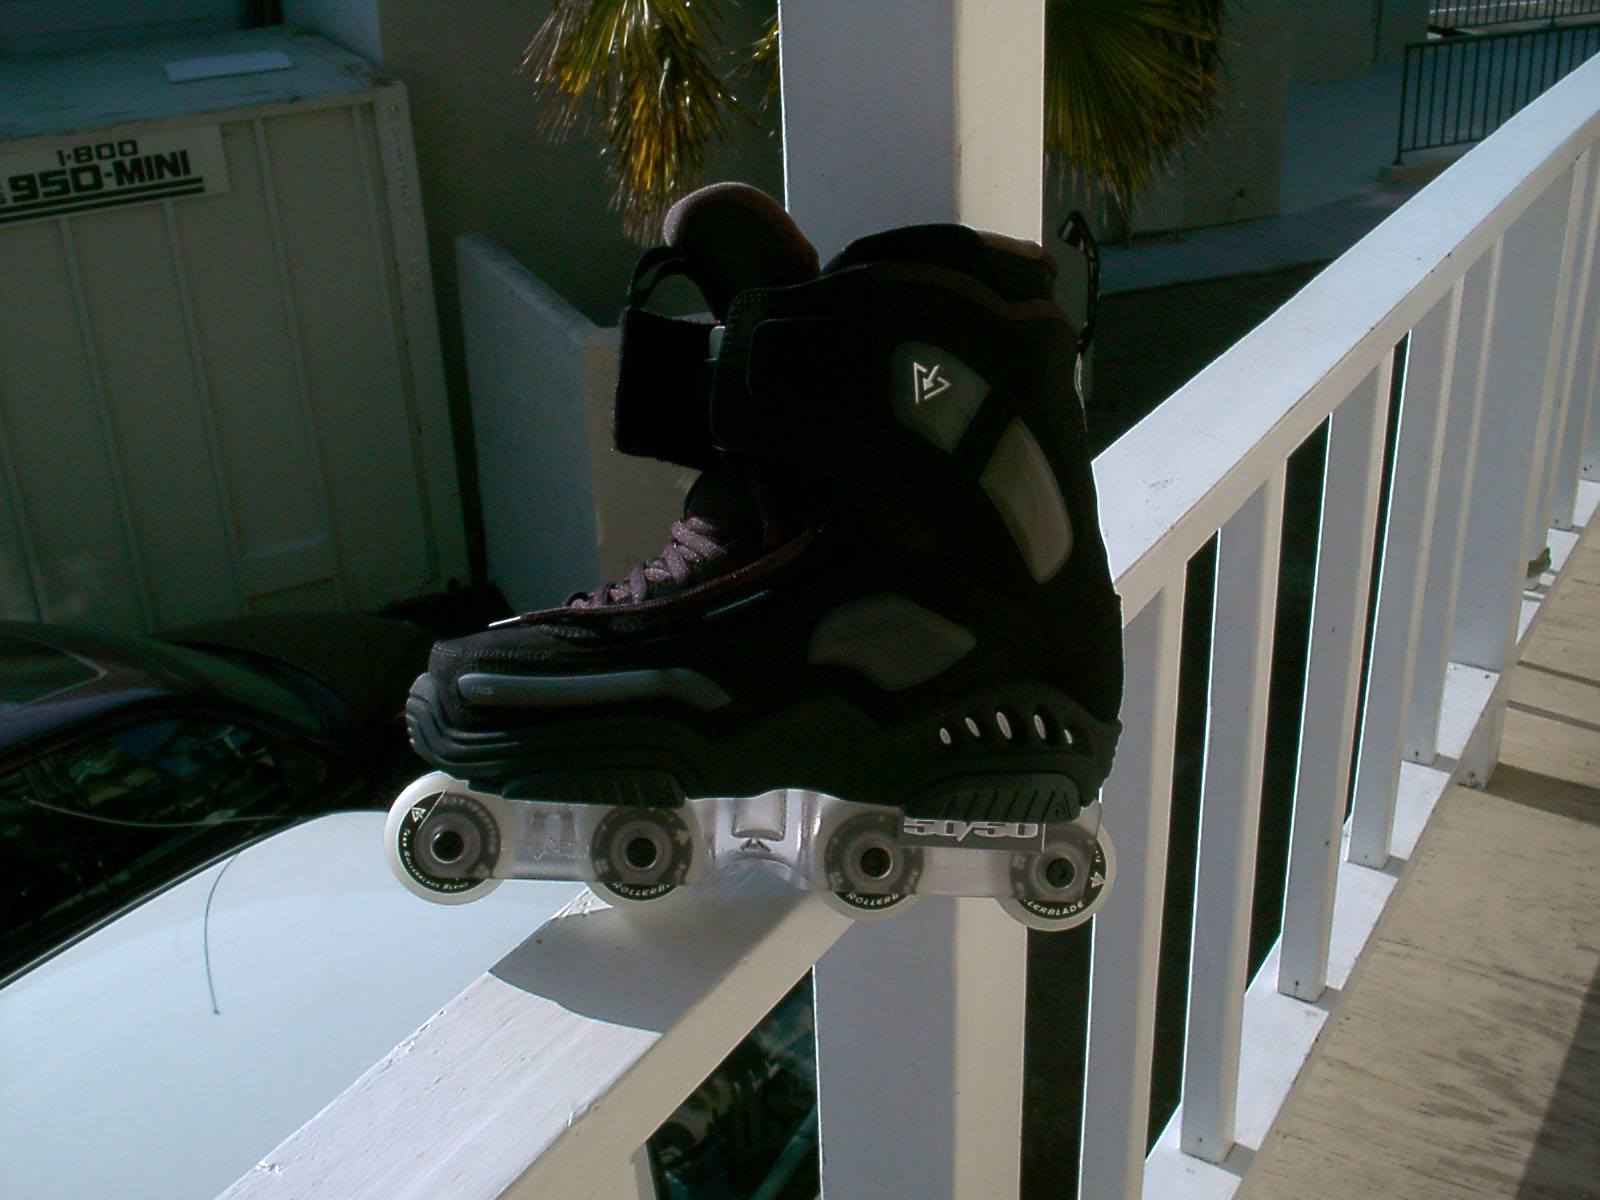 The clear 50/50 UFS frames looked incredible on a pair of the new Rollerblade Access skates.